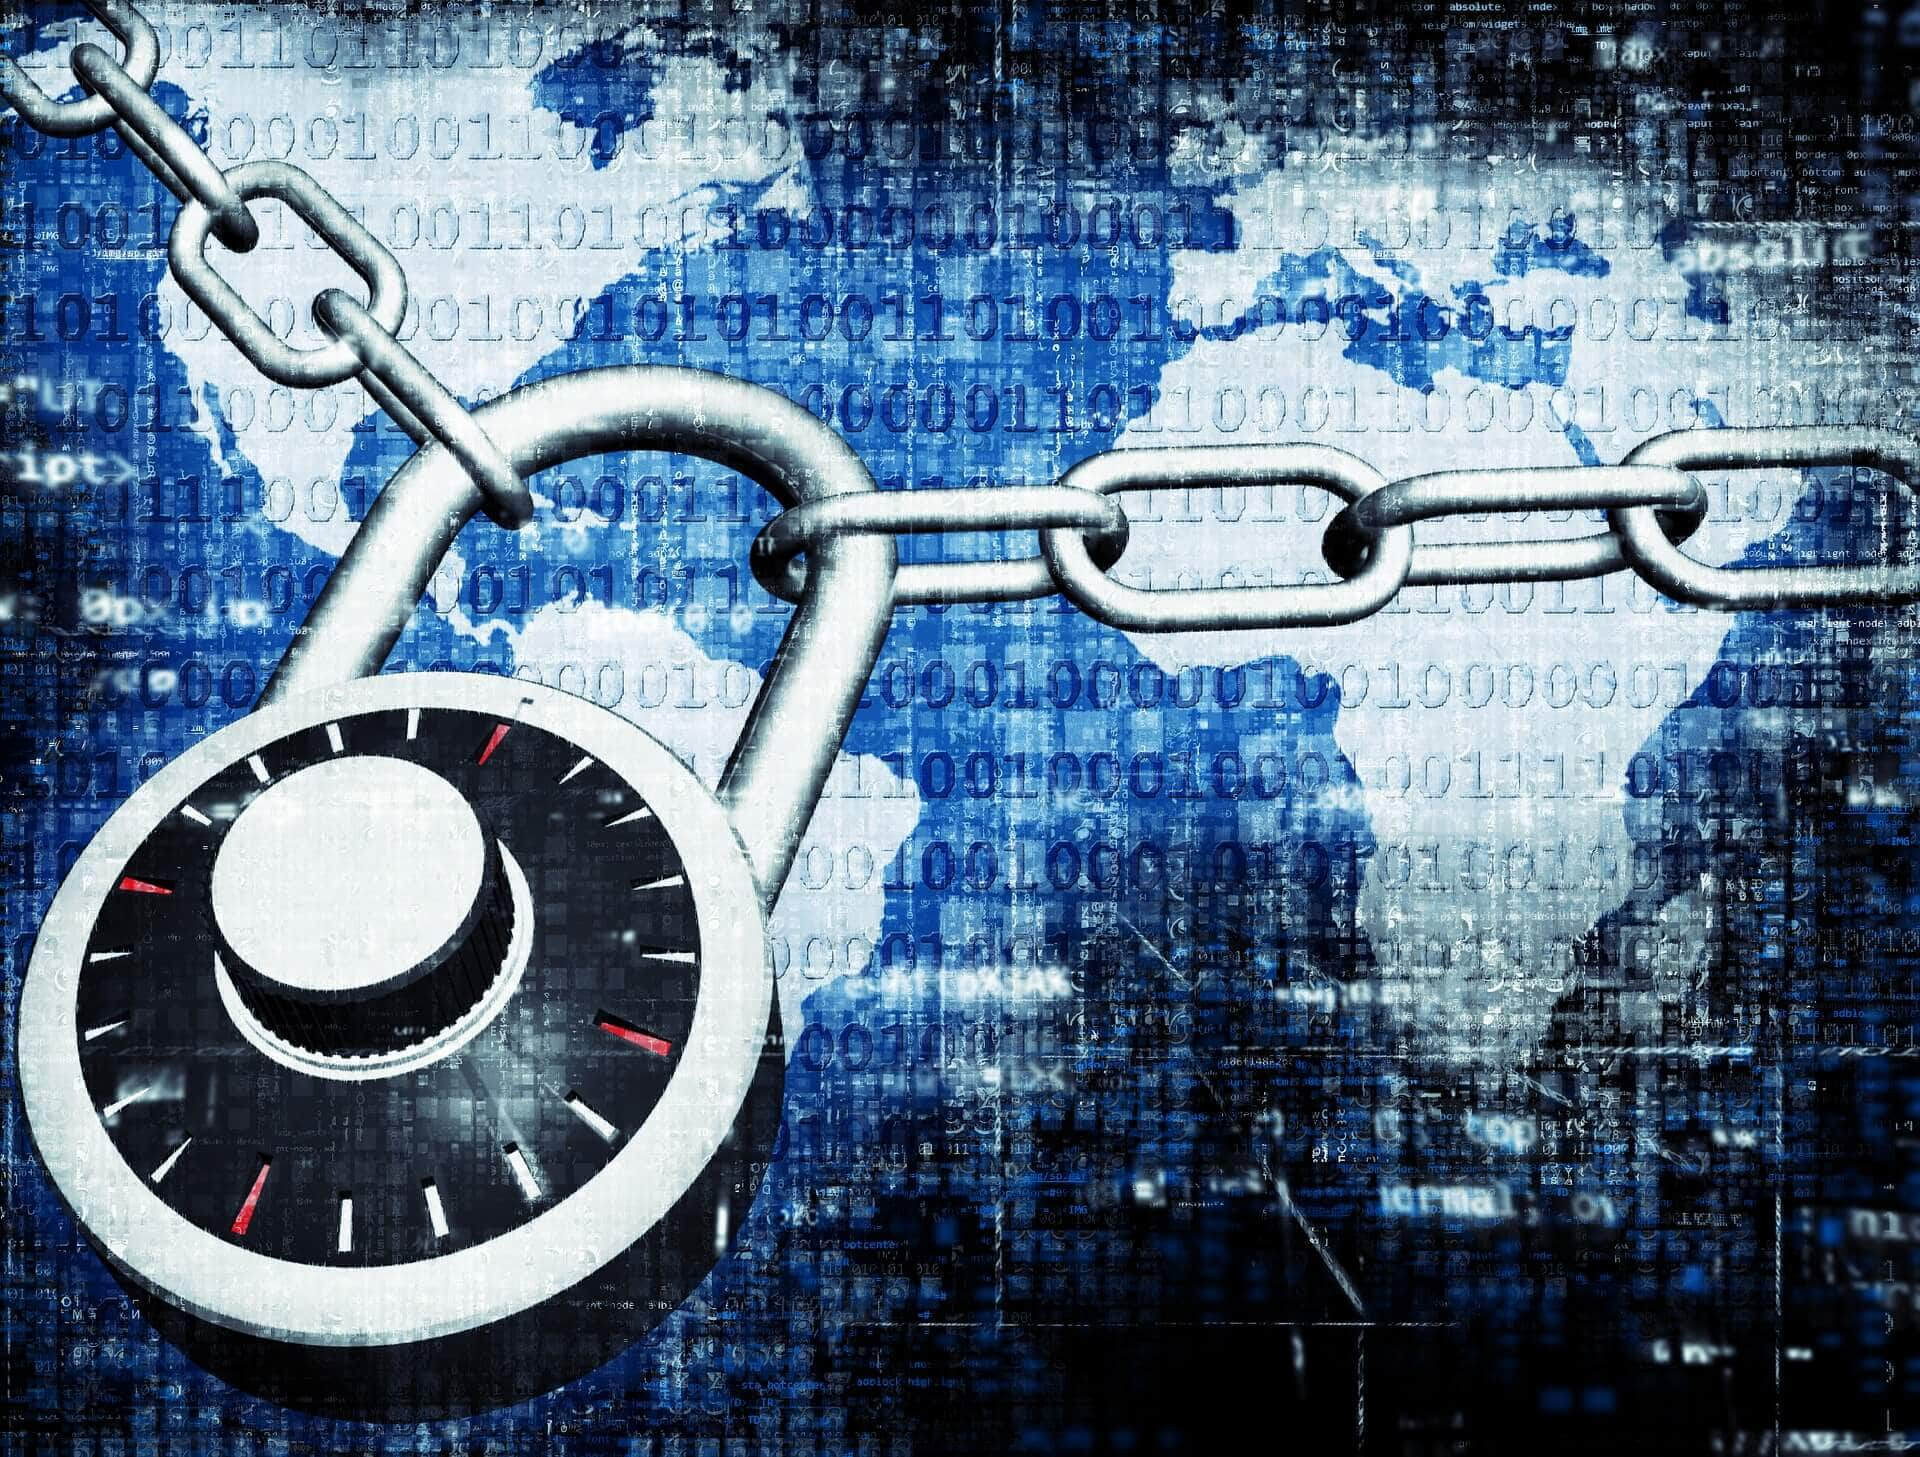 content/en-gb/images/repository/isc/2020/how-to-protect-your-internet-privacy.jpg